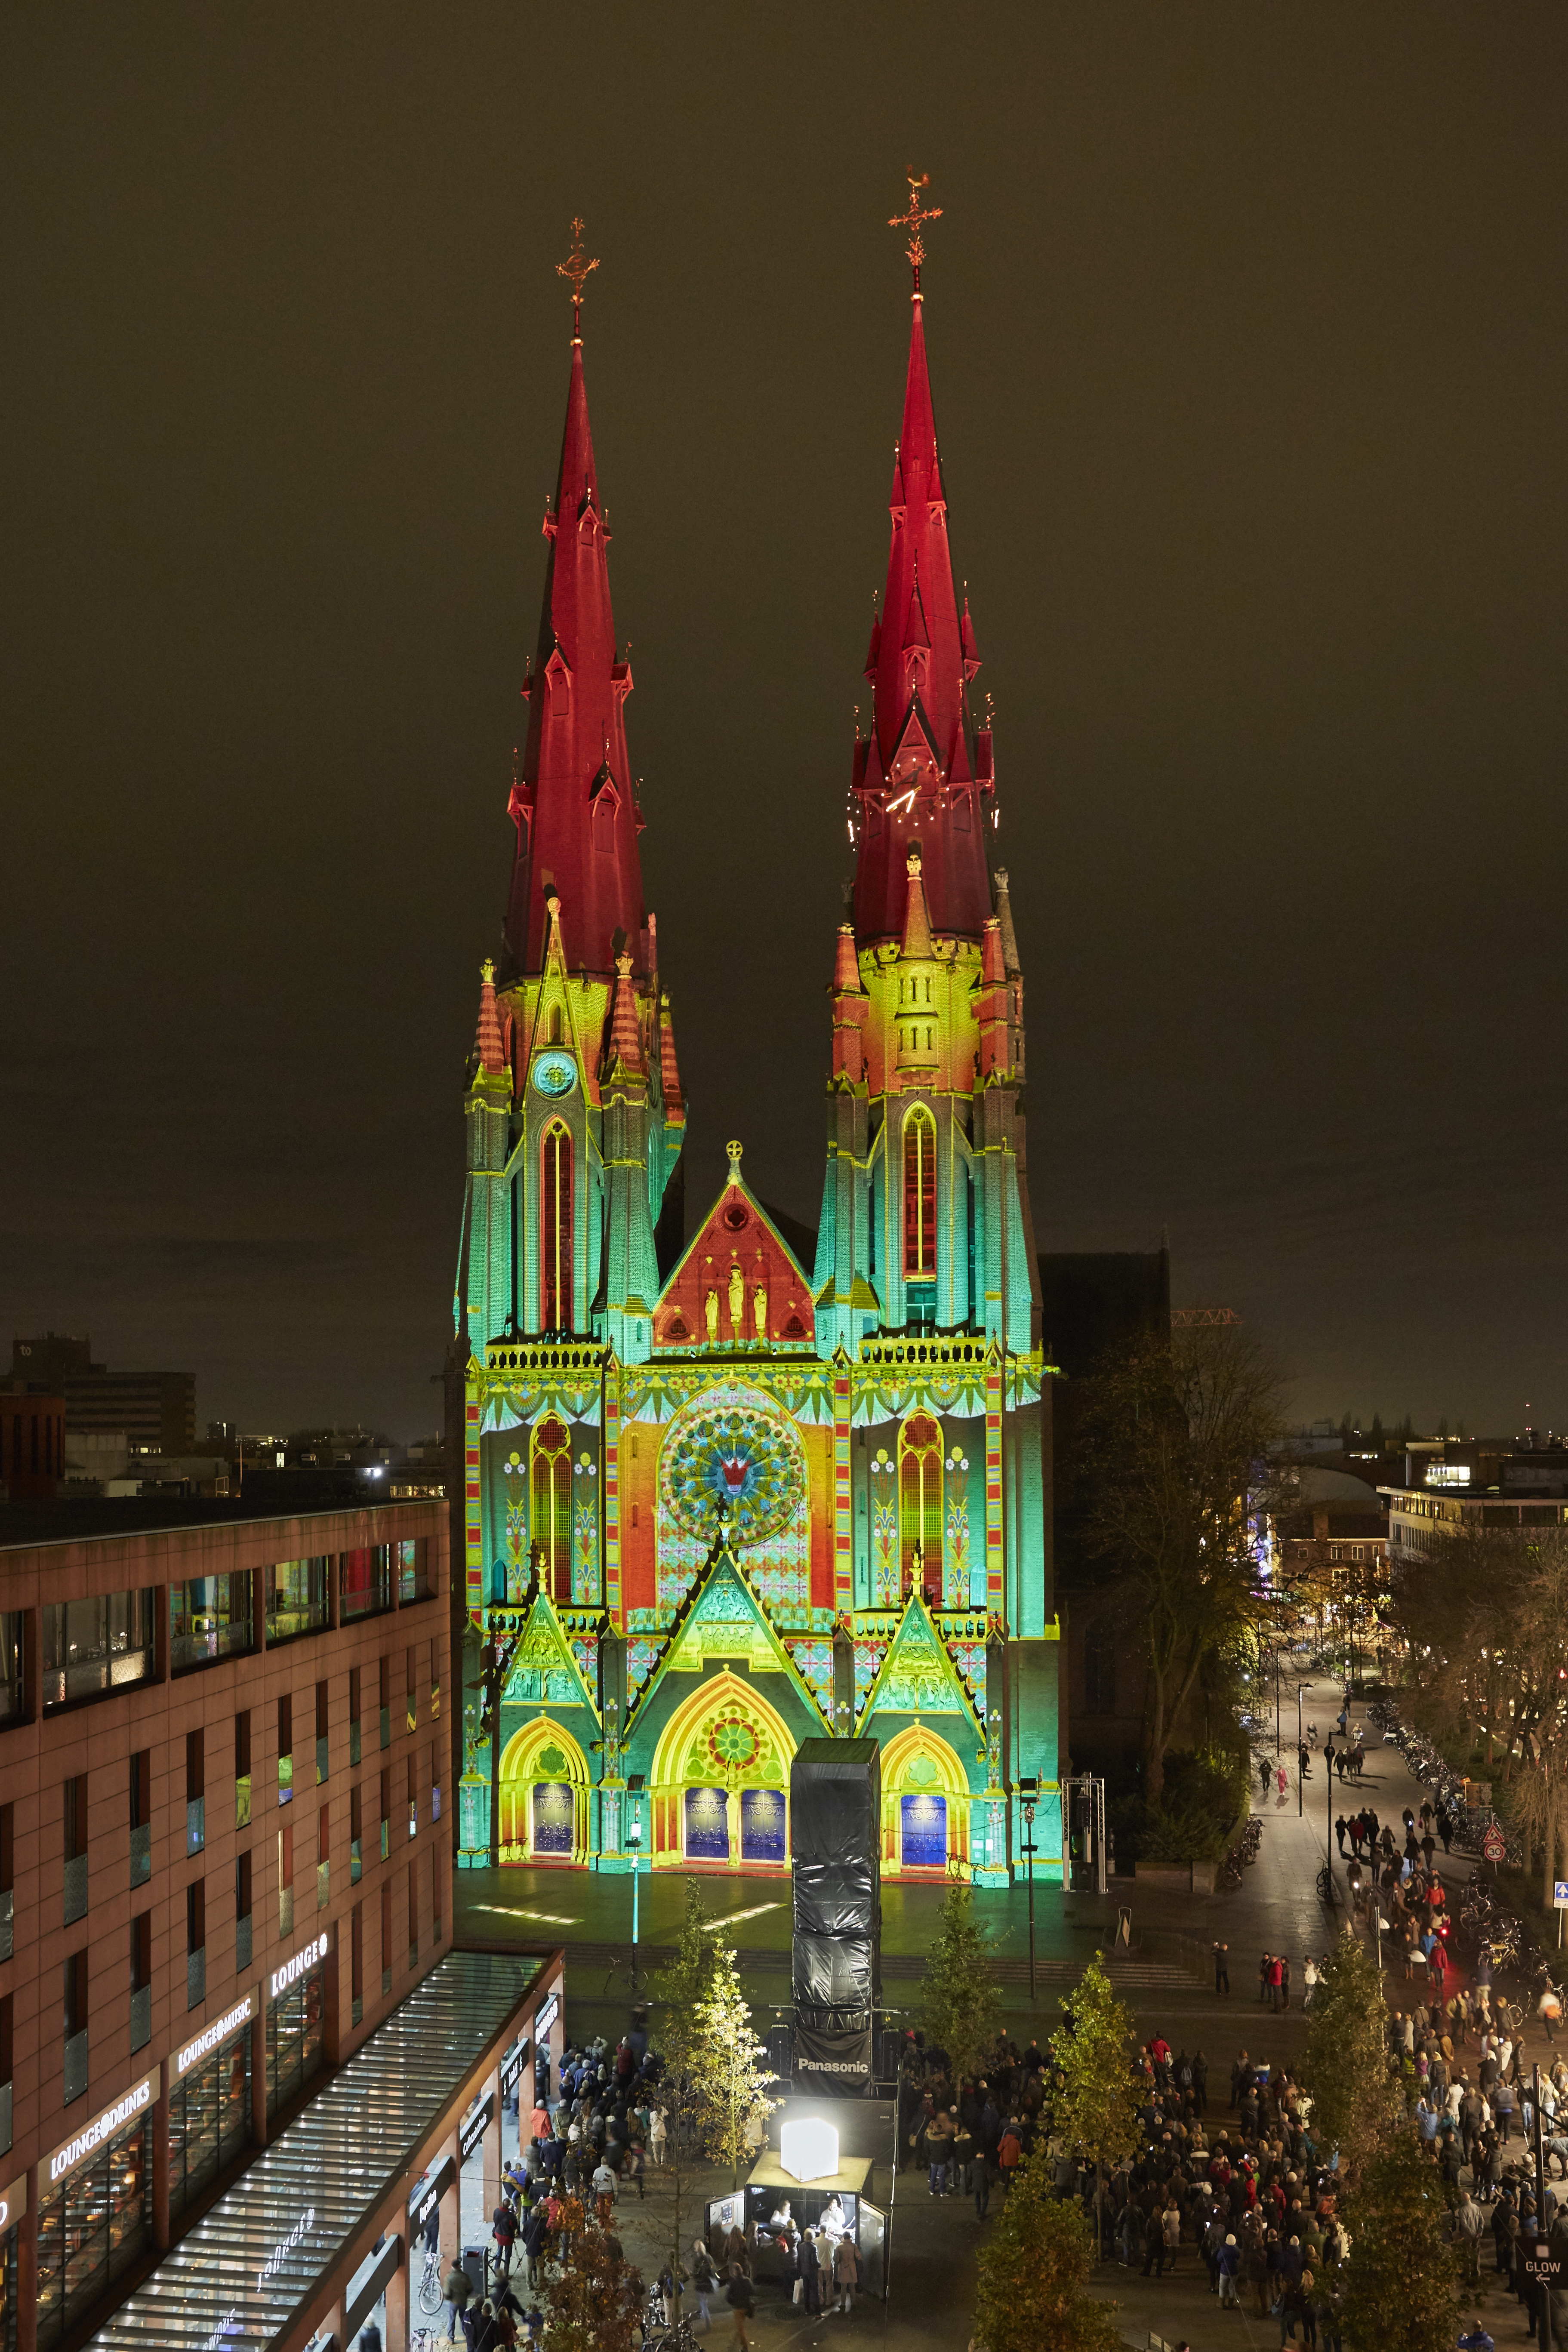 GLOW 2014 Catharinakerk Ad Lib Créations; The Enchanted Cathedral & The seasons. © Claus Langer